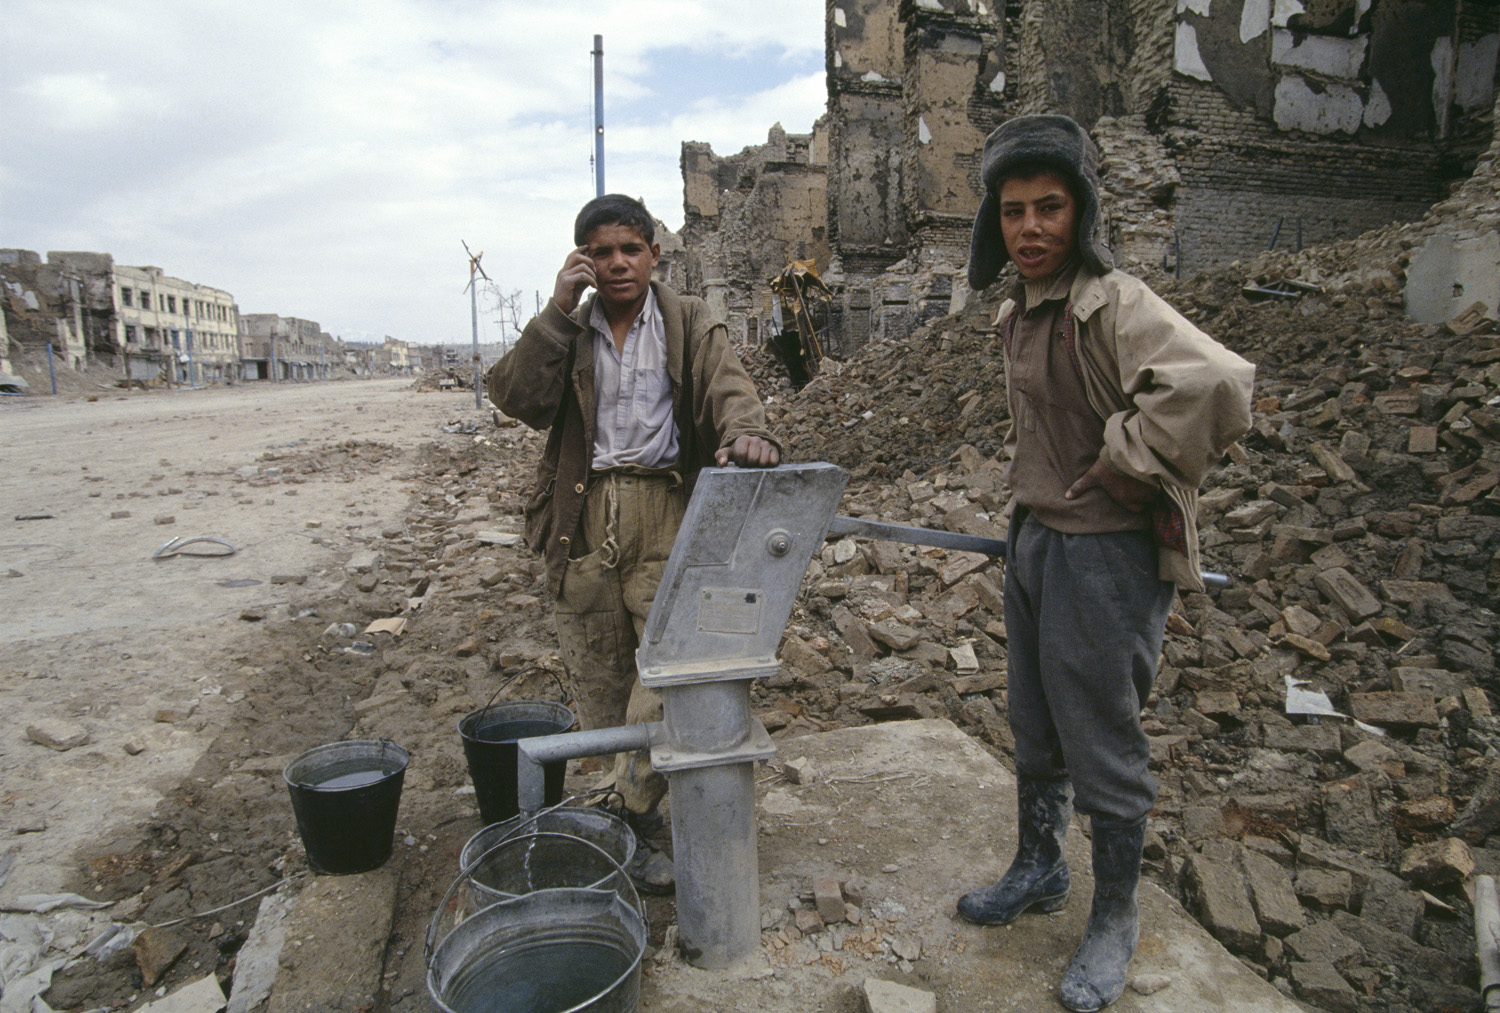 March 1994: Boys working with government militiamen fill water buckets from a hand pump on Jade Maiwand, Kabul's former business district and a front line between factional groups. Food, water and fuel were retrieved during short-lived periods of peace.